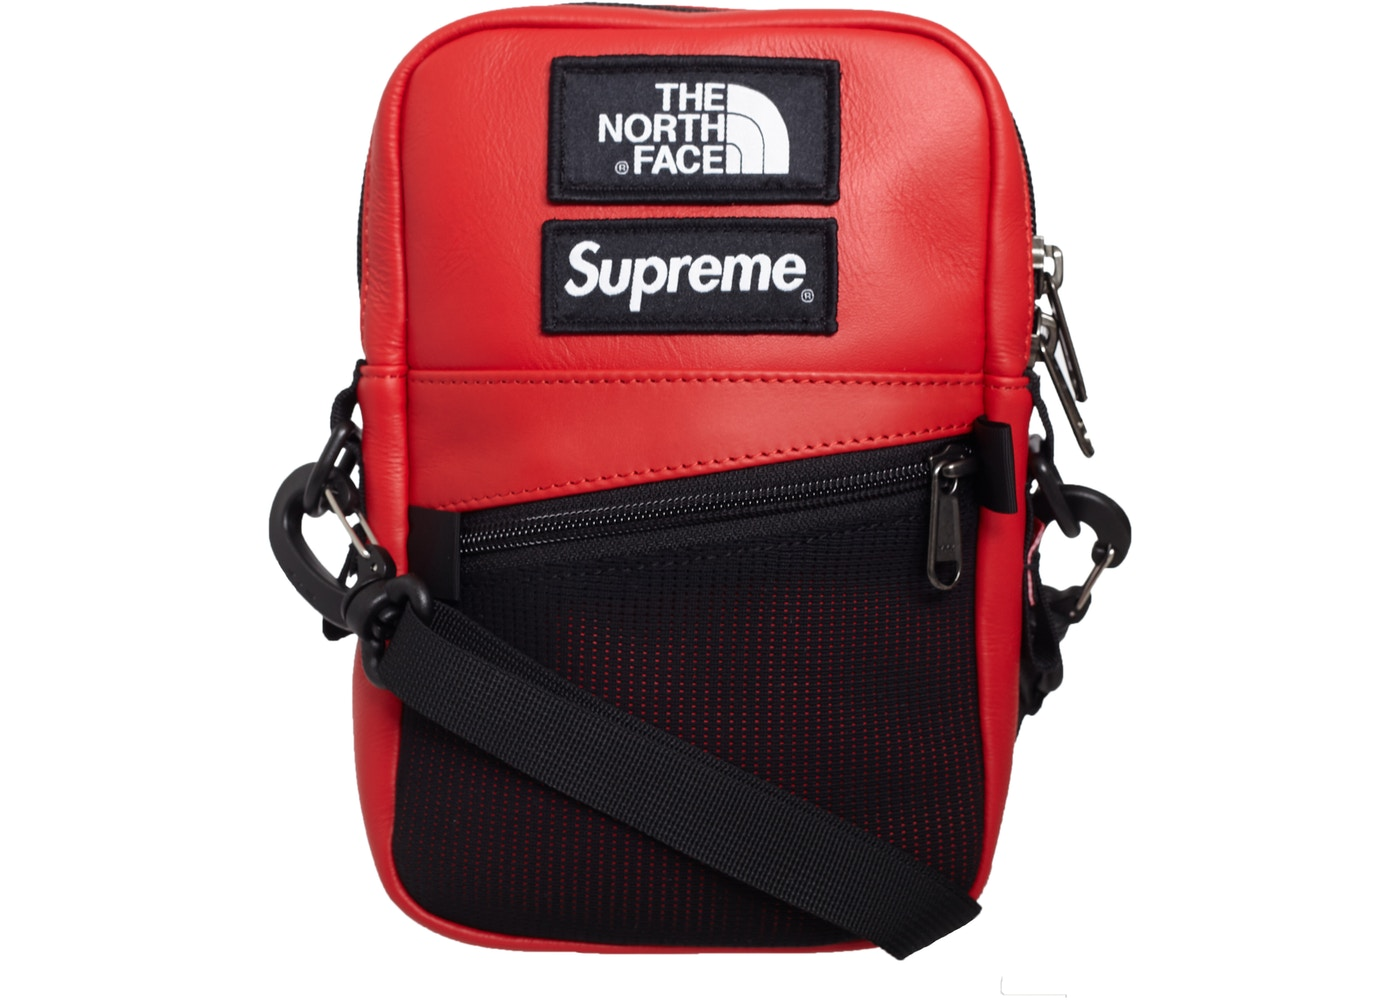 Supreme The North Face Leather Shoulder Bag Red - FW18 8a28d9824